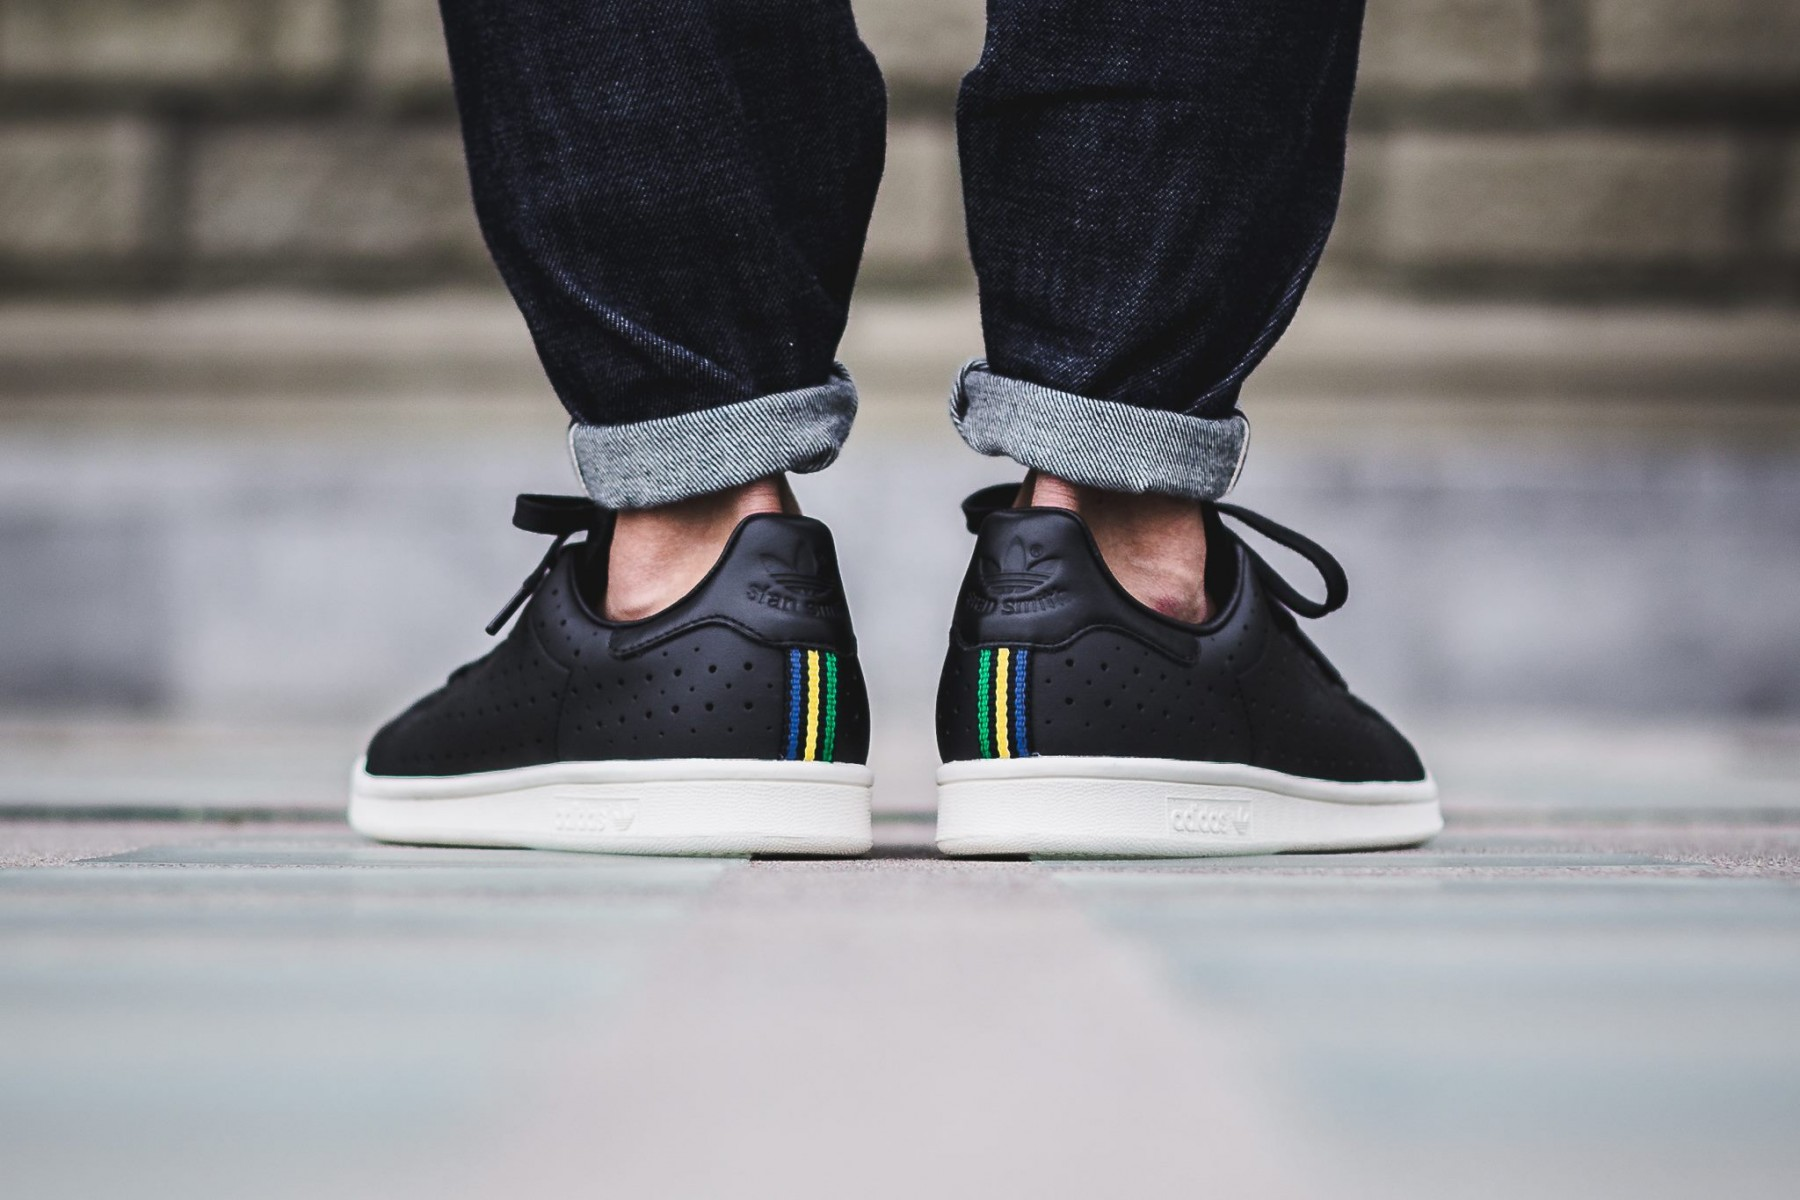 adidas-originals-perforated-stan-smith-6-1800x1200